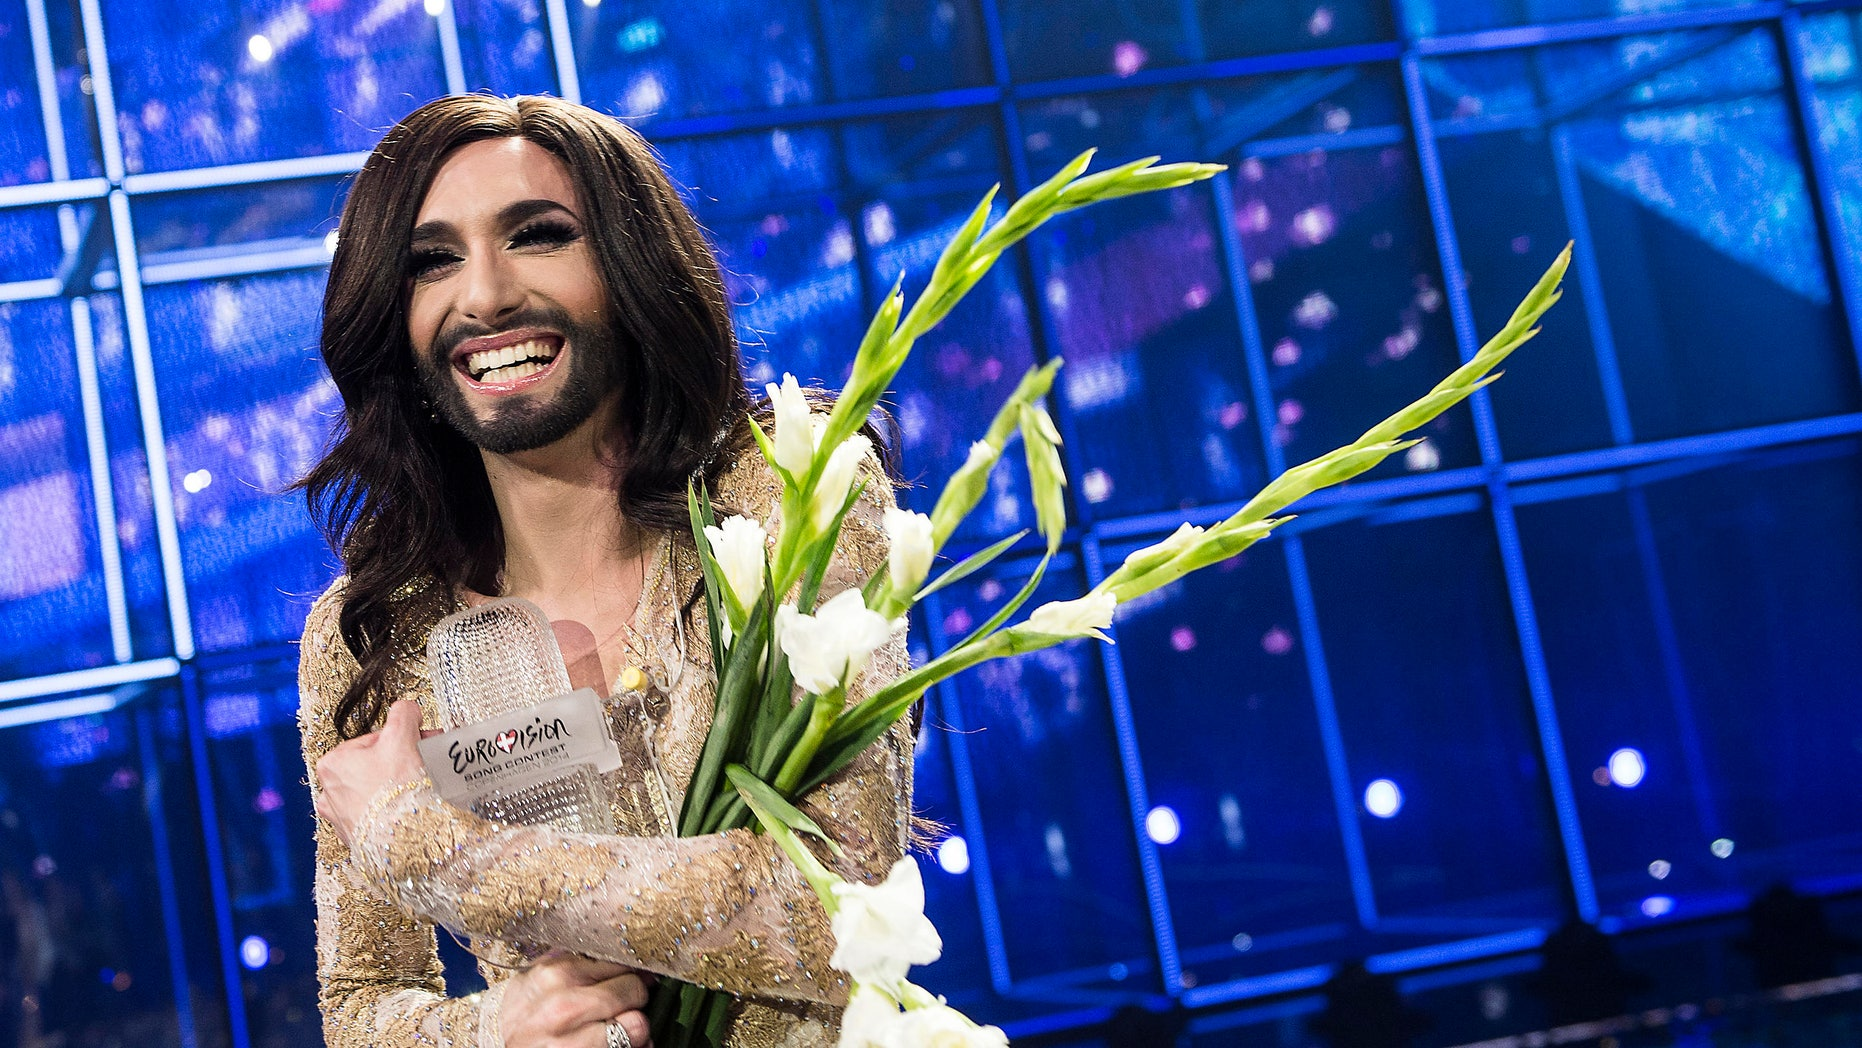 May 10, 2014. Conchita Wurst representing Austria poses with the trophy after winning the 59th annual Eurovision Song Contest (ESC) at the B&W Hallerne in Copenhagen.